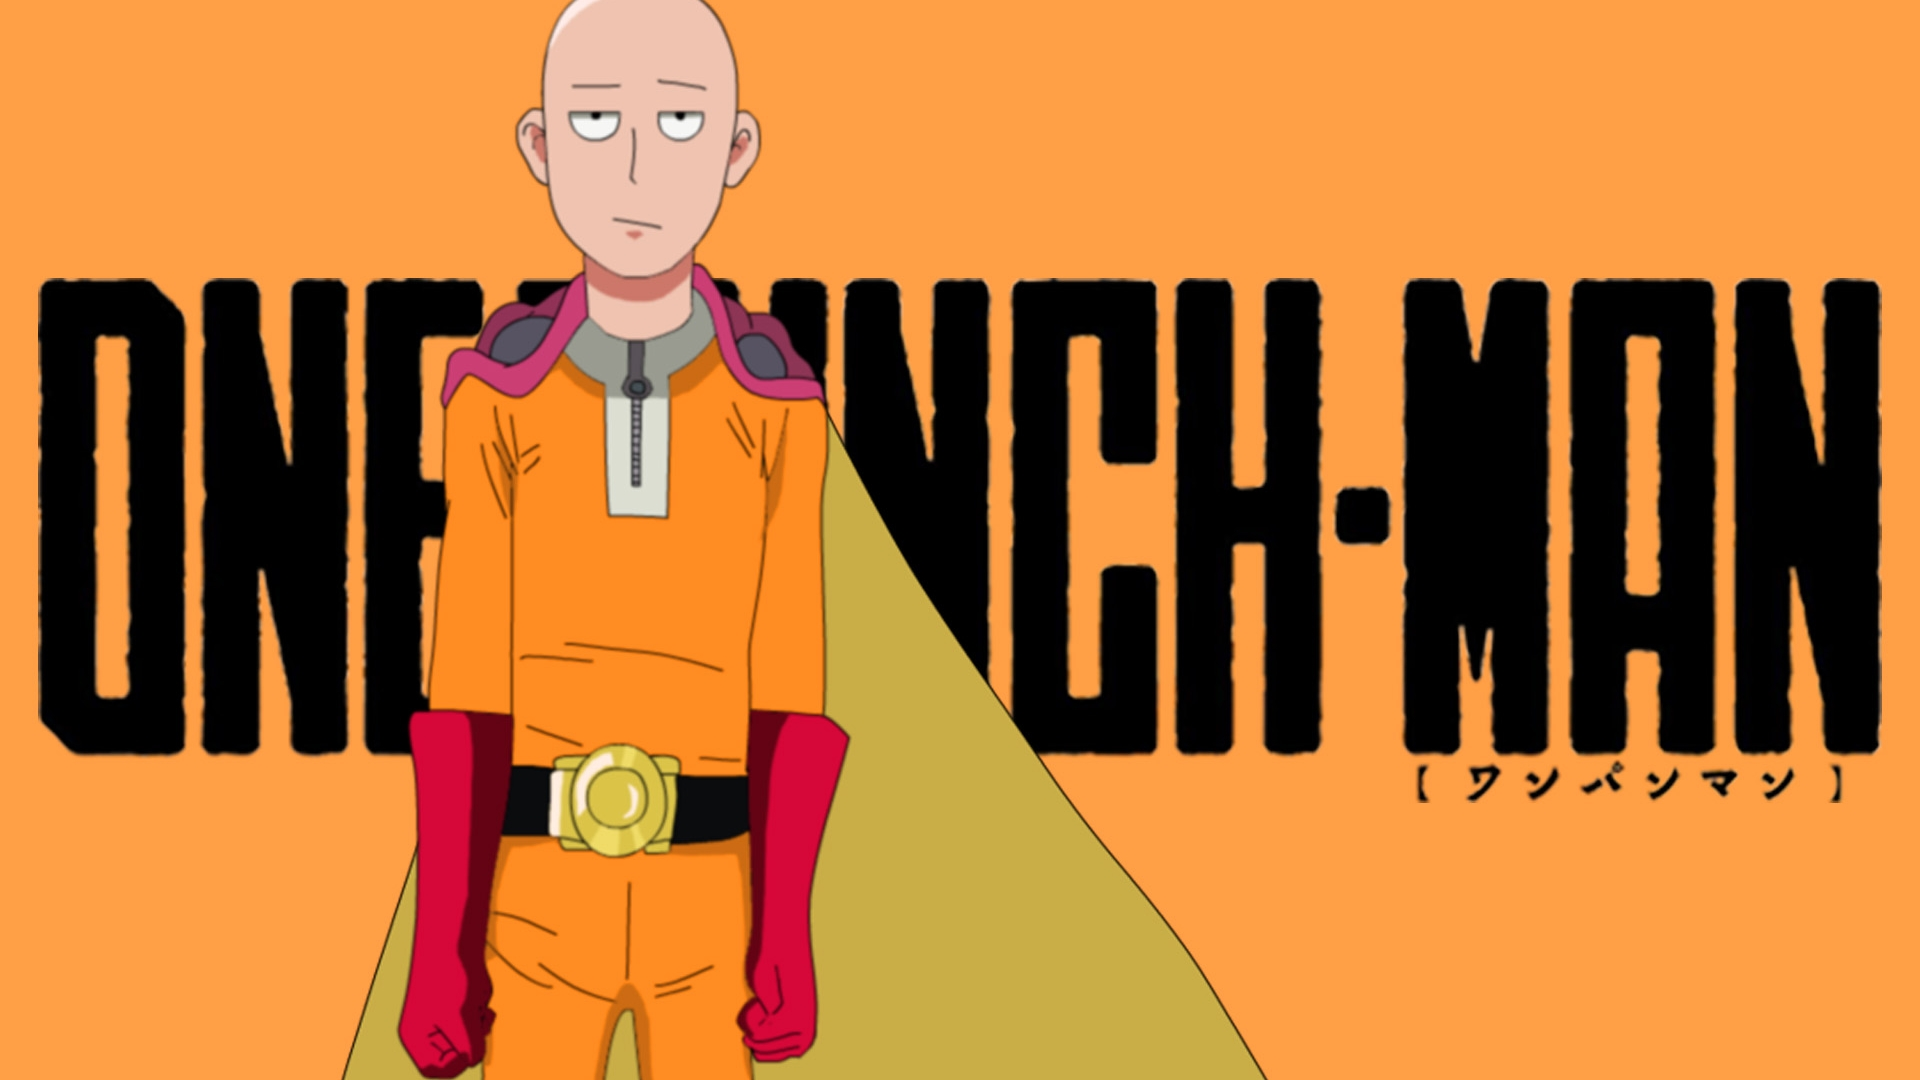 One Punch Man Chapter 135 Full Summary and Spoilers